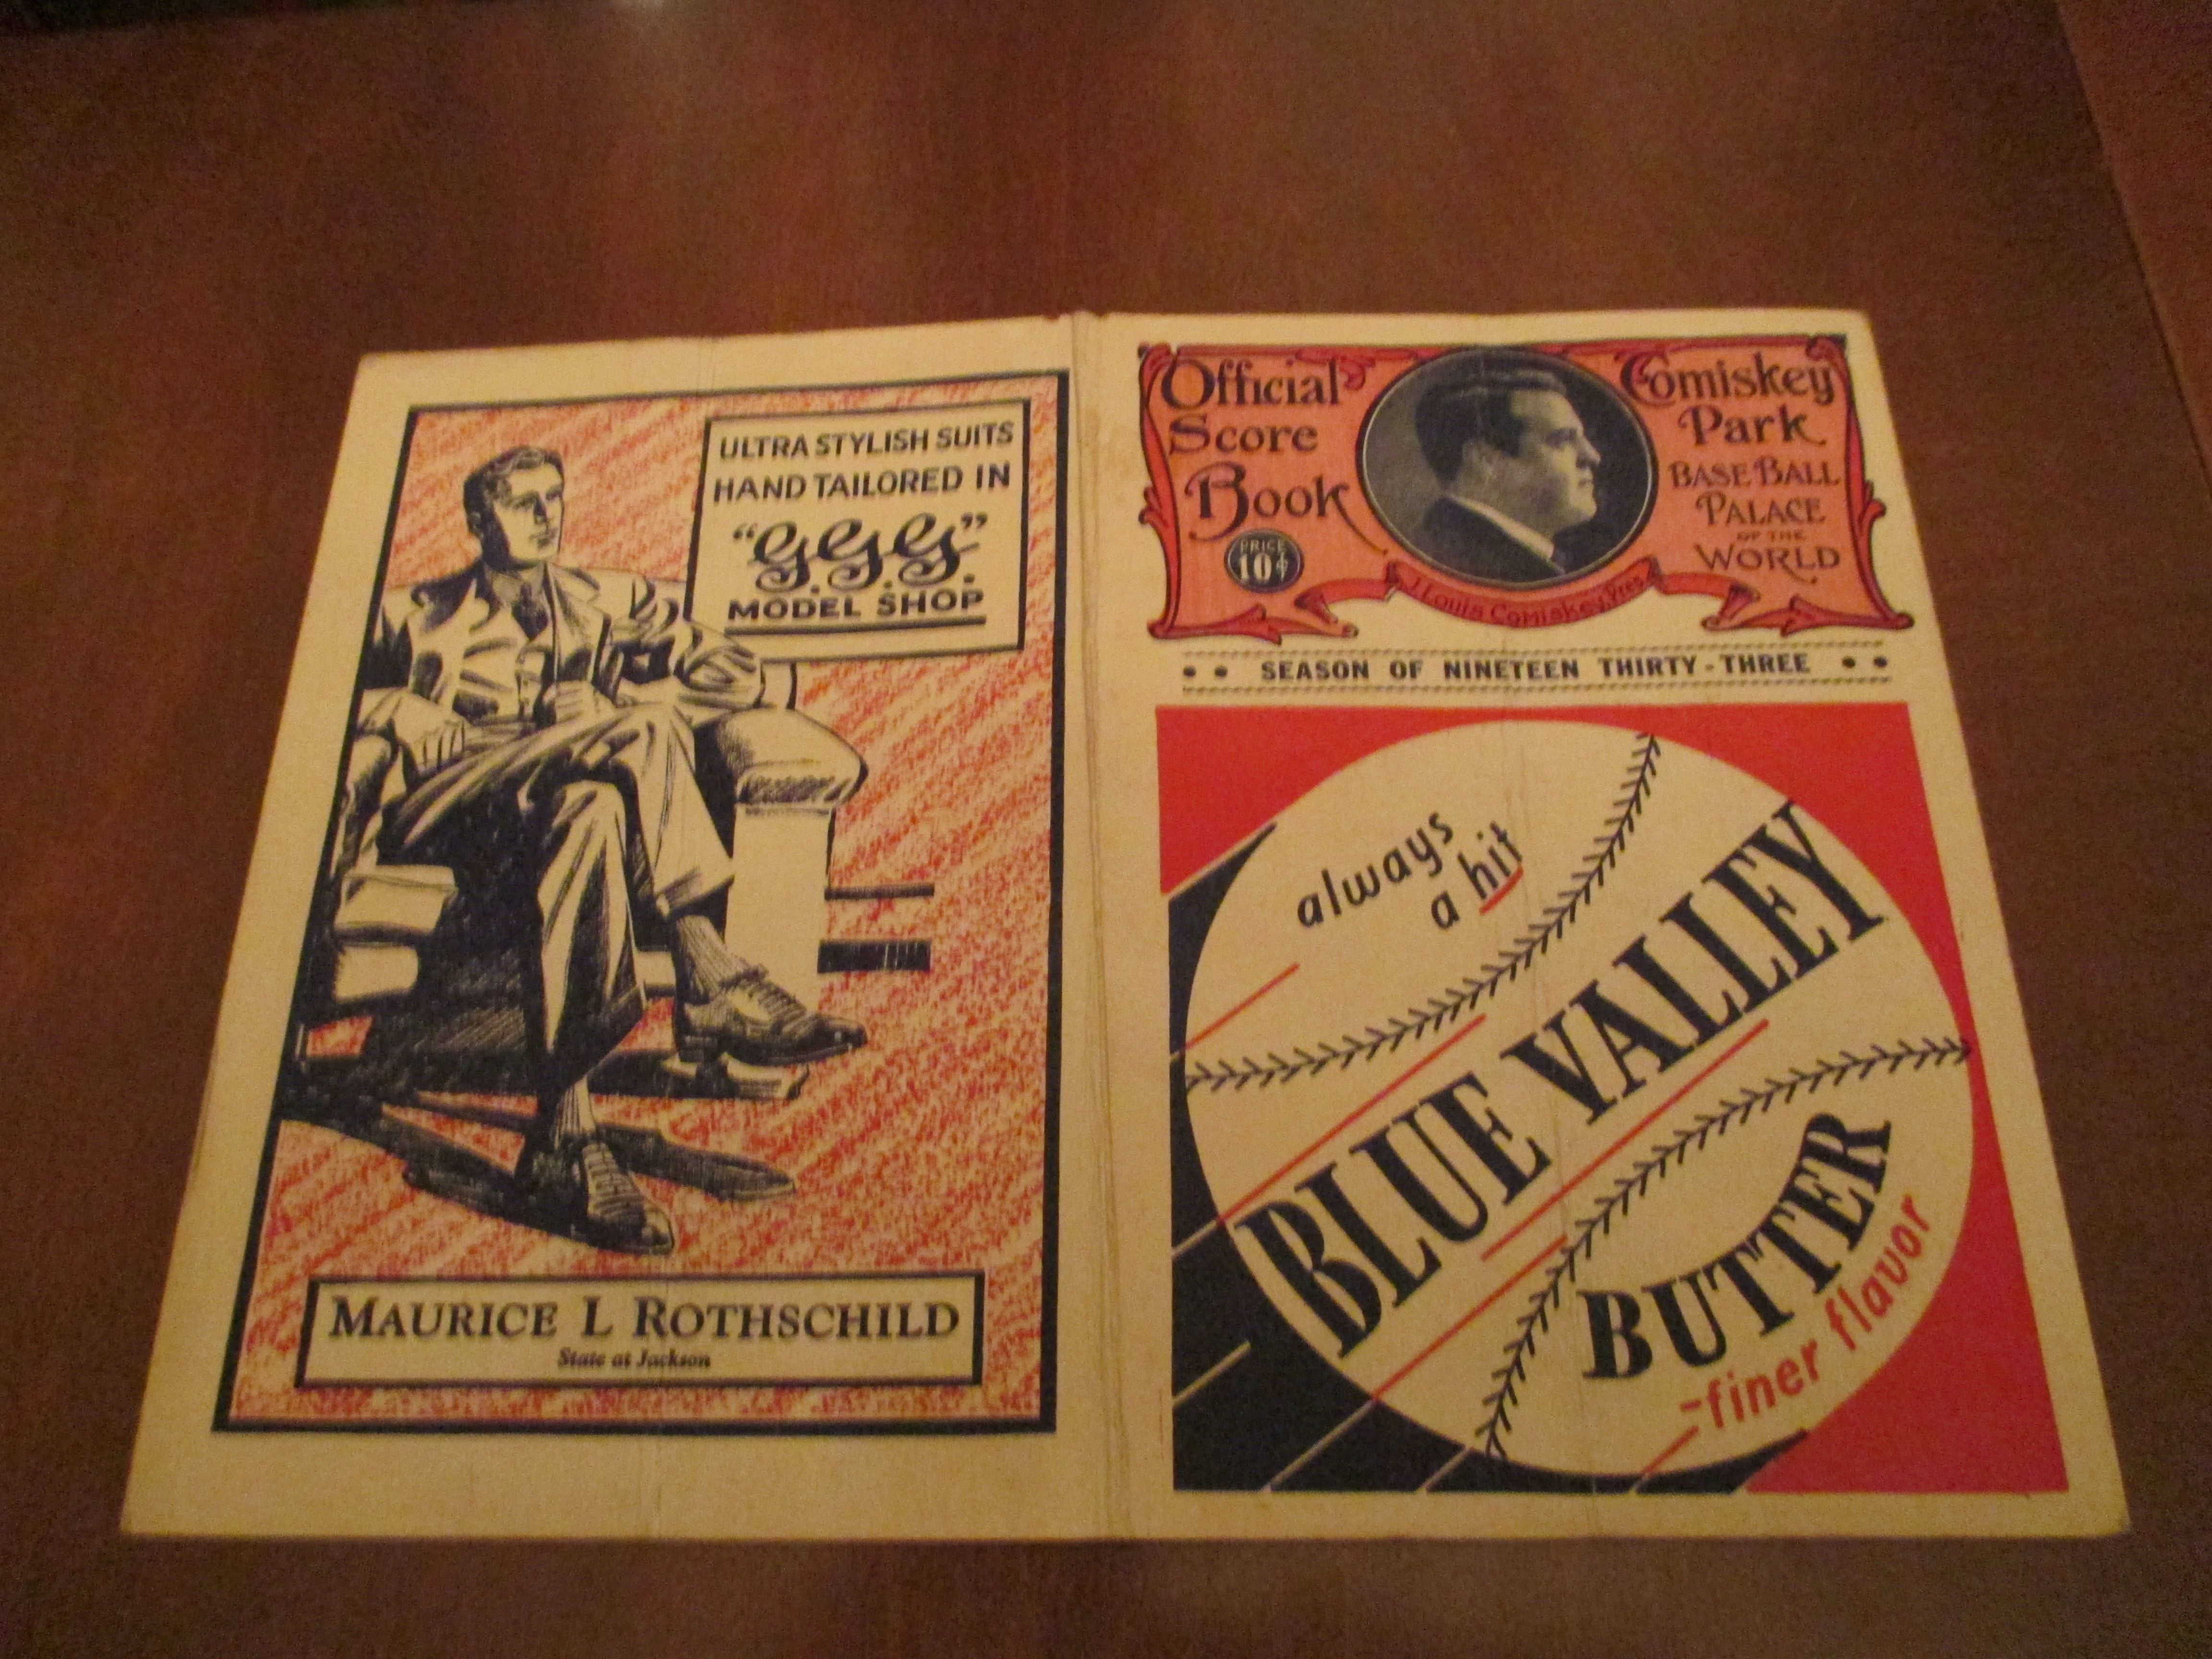 1933 all star program found in attic. First all star game